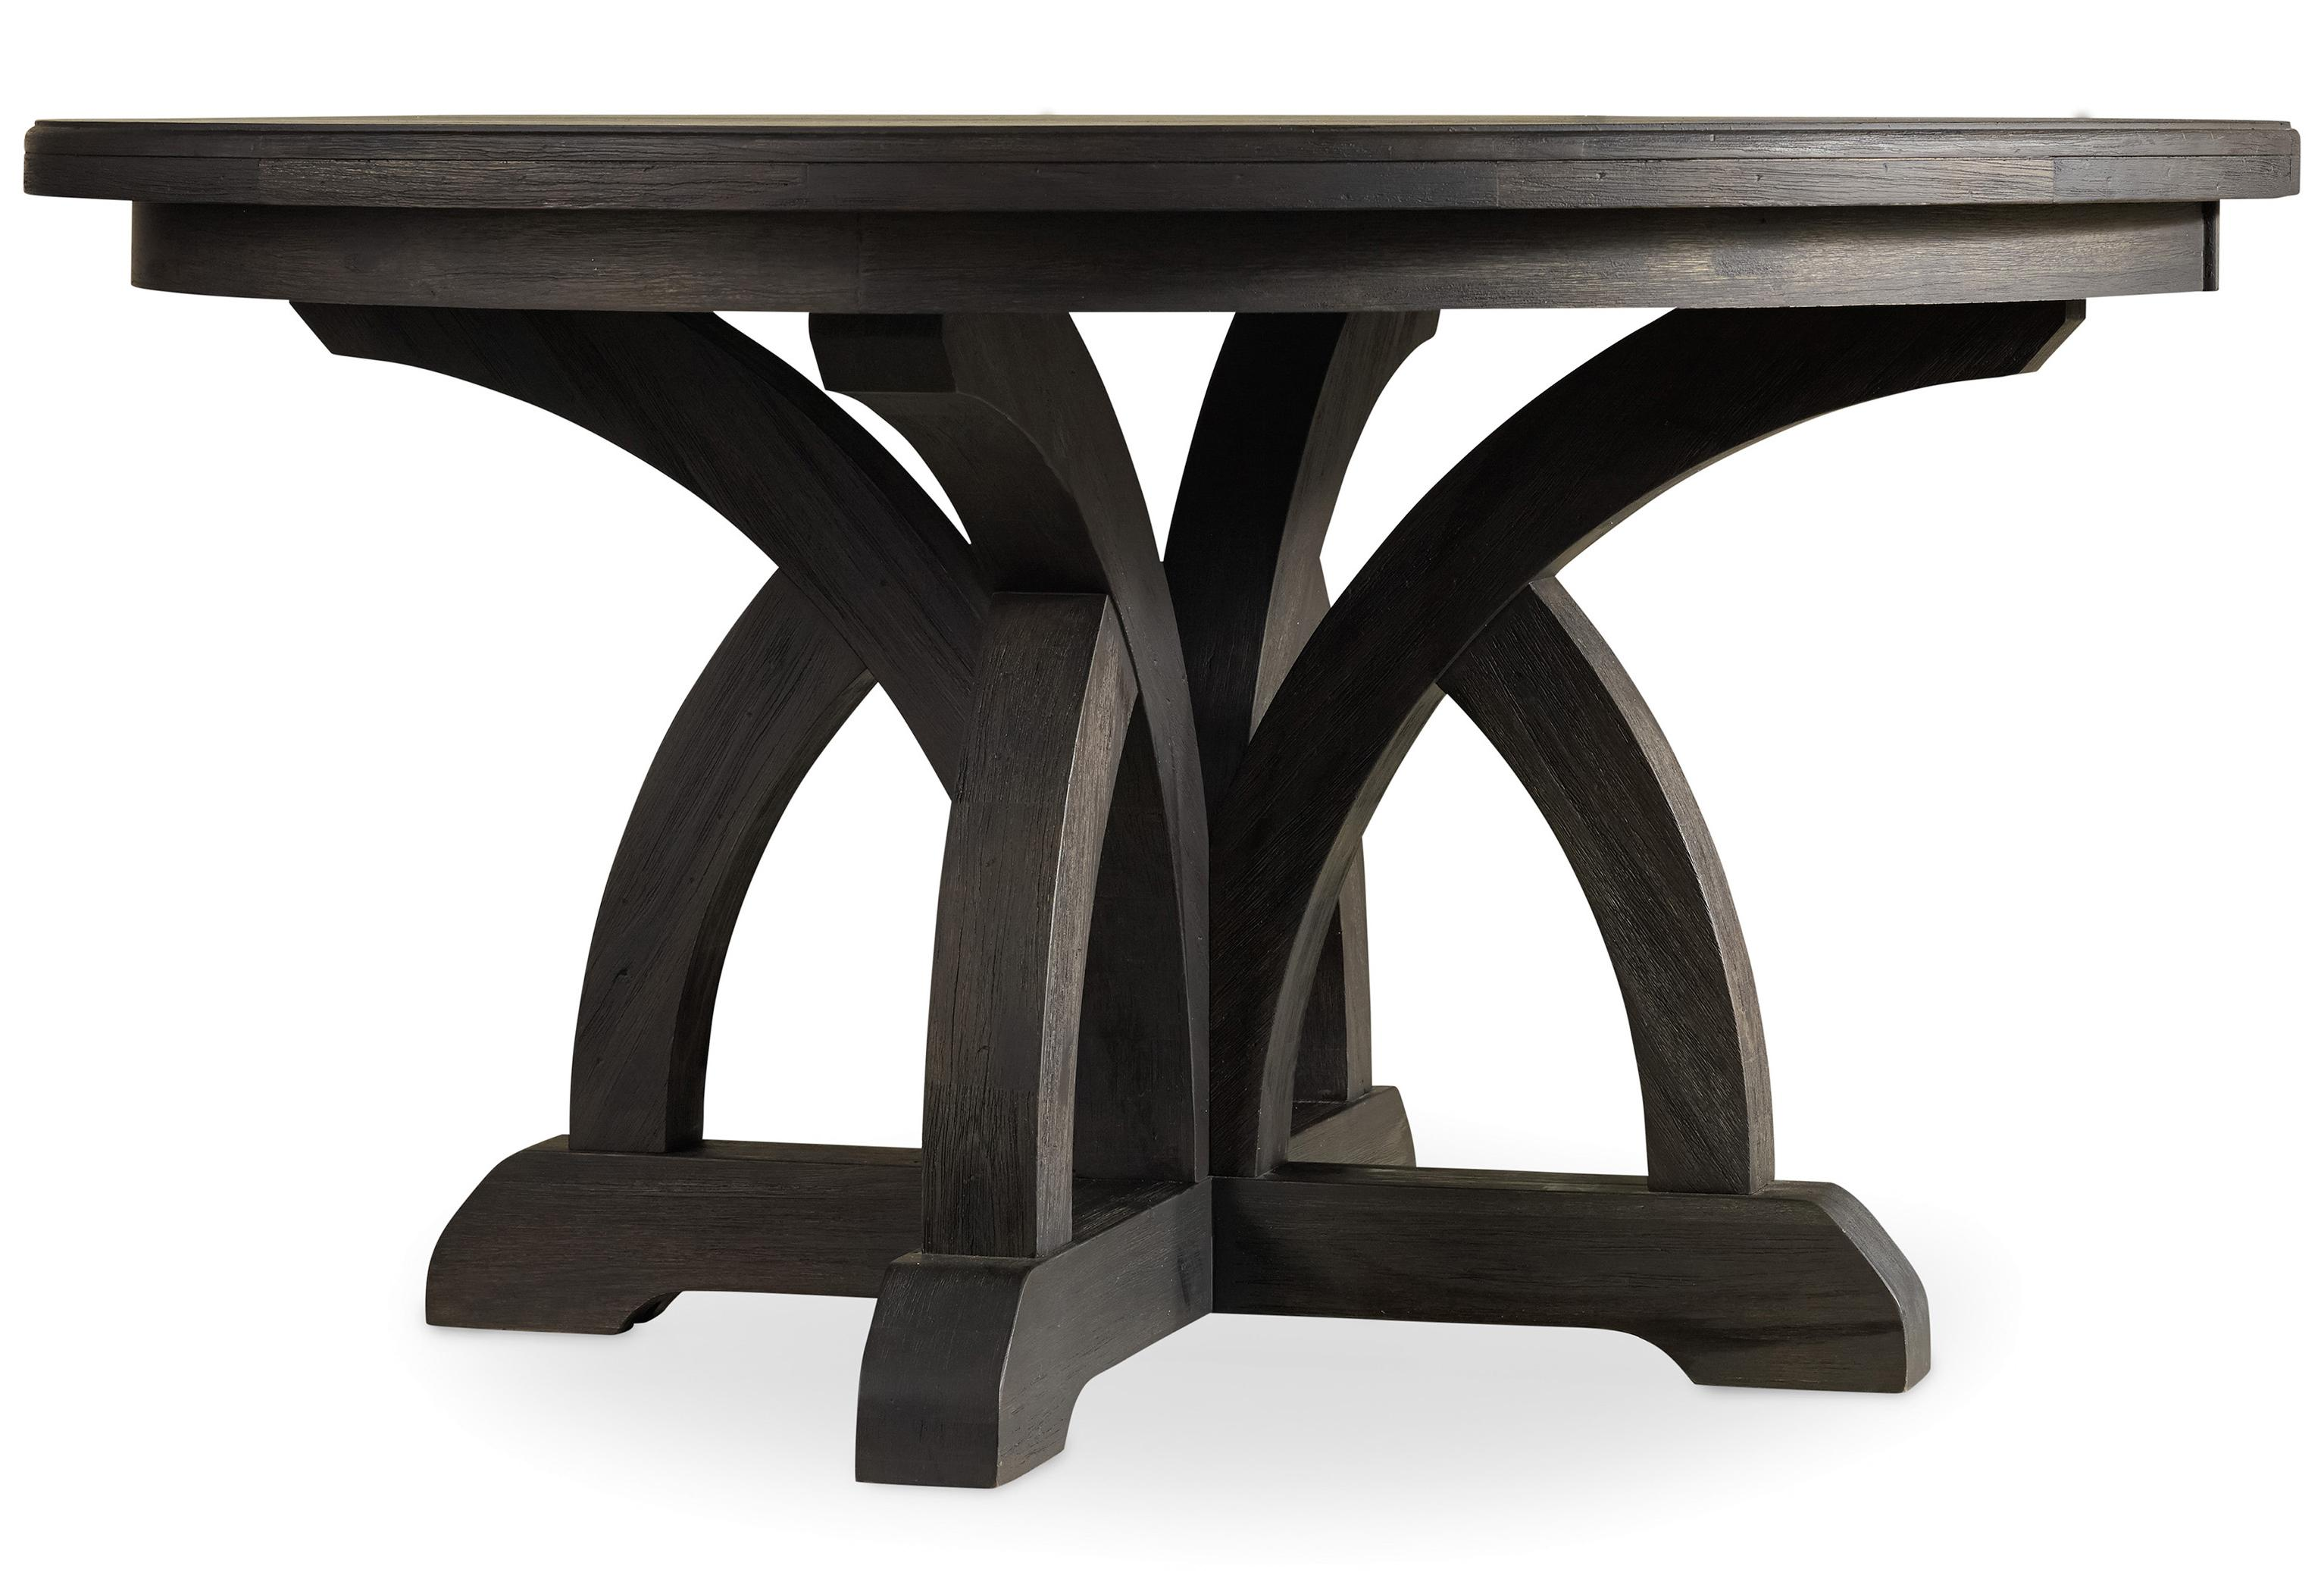 Hooker Furniture Corsica Round Dining Table - Item Number: 5280-75203